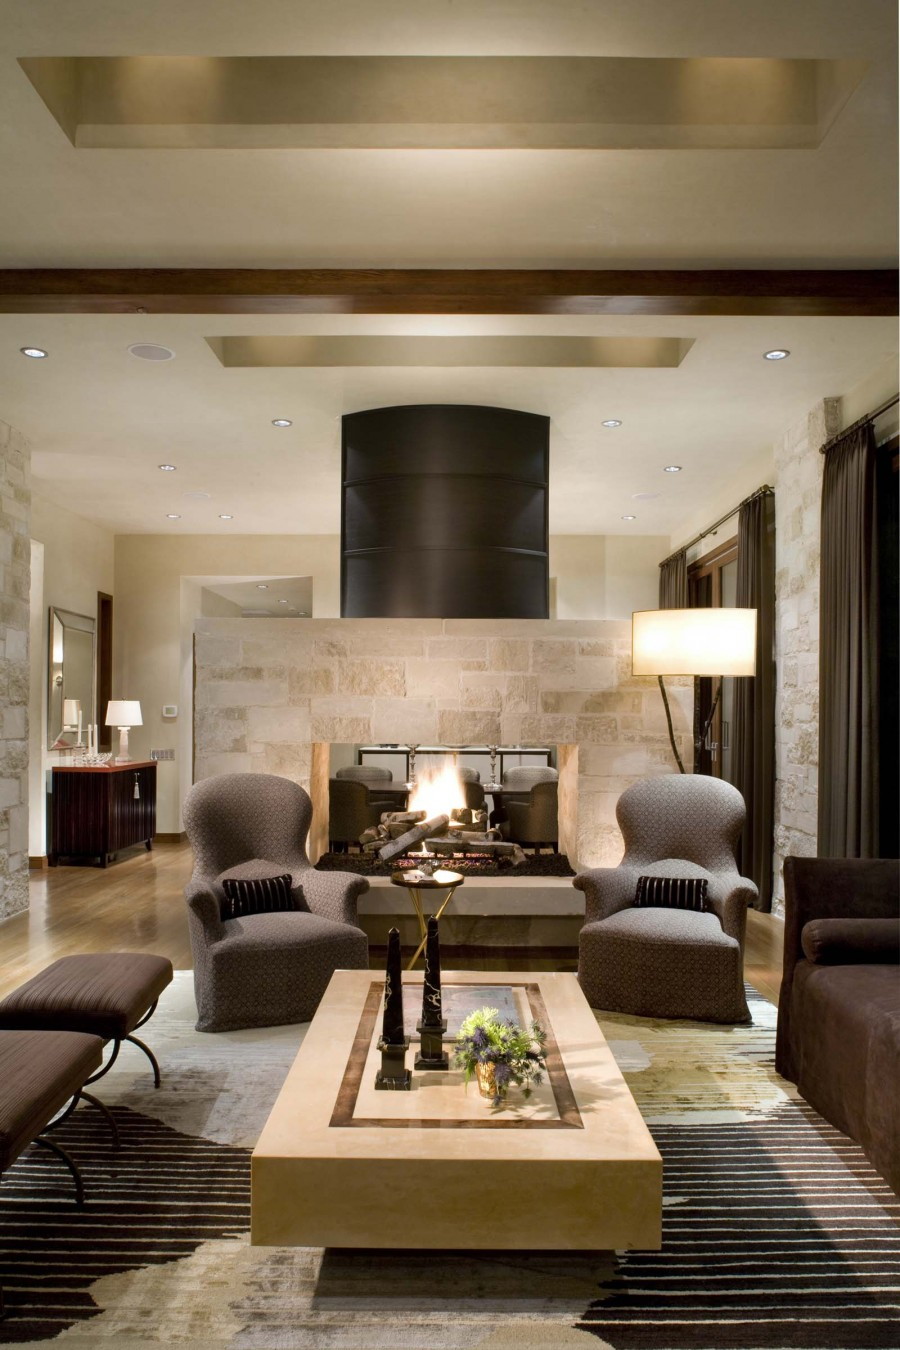 16 fabulous earth tones living room designs decoholic for Interior design of living room